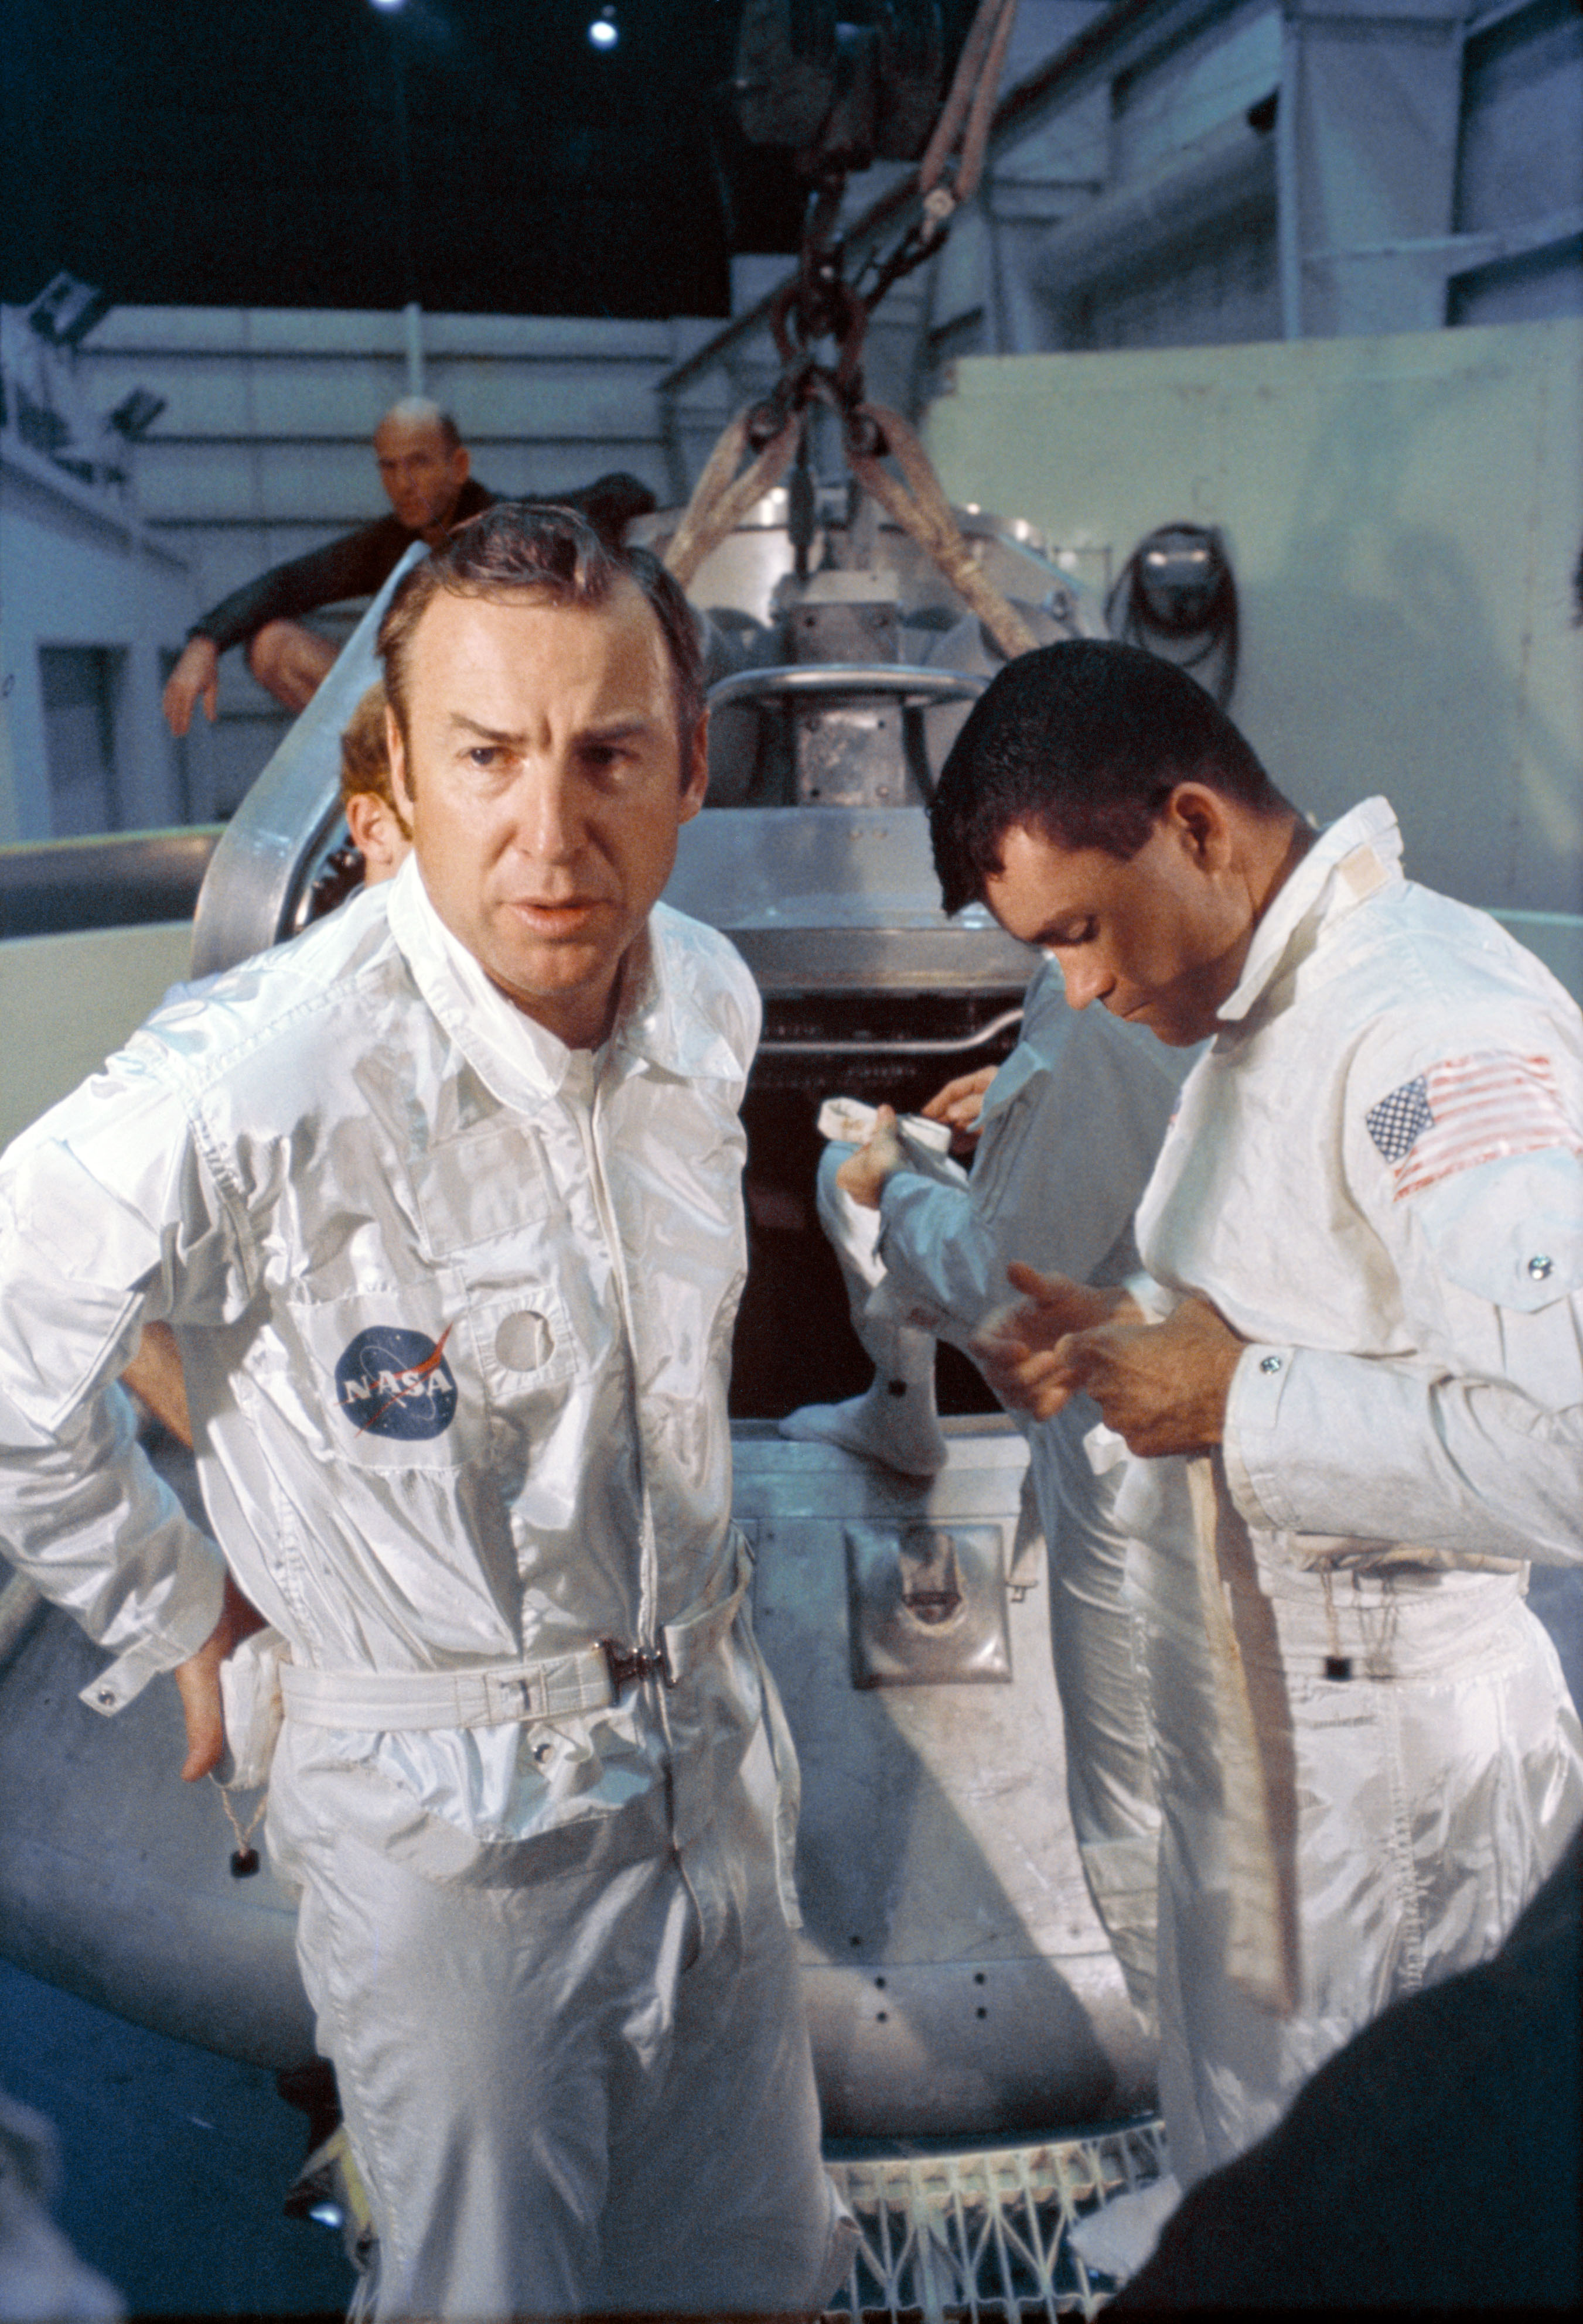 apollo 13 case study The apollo 13 mission is one of the best examples of crisis management and teamwork under extreme pressure in history.